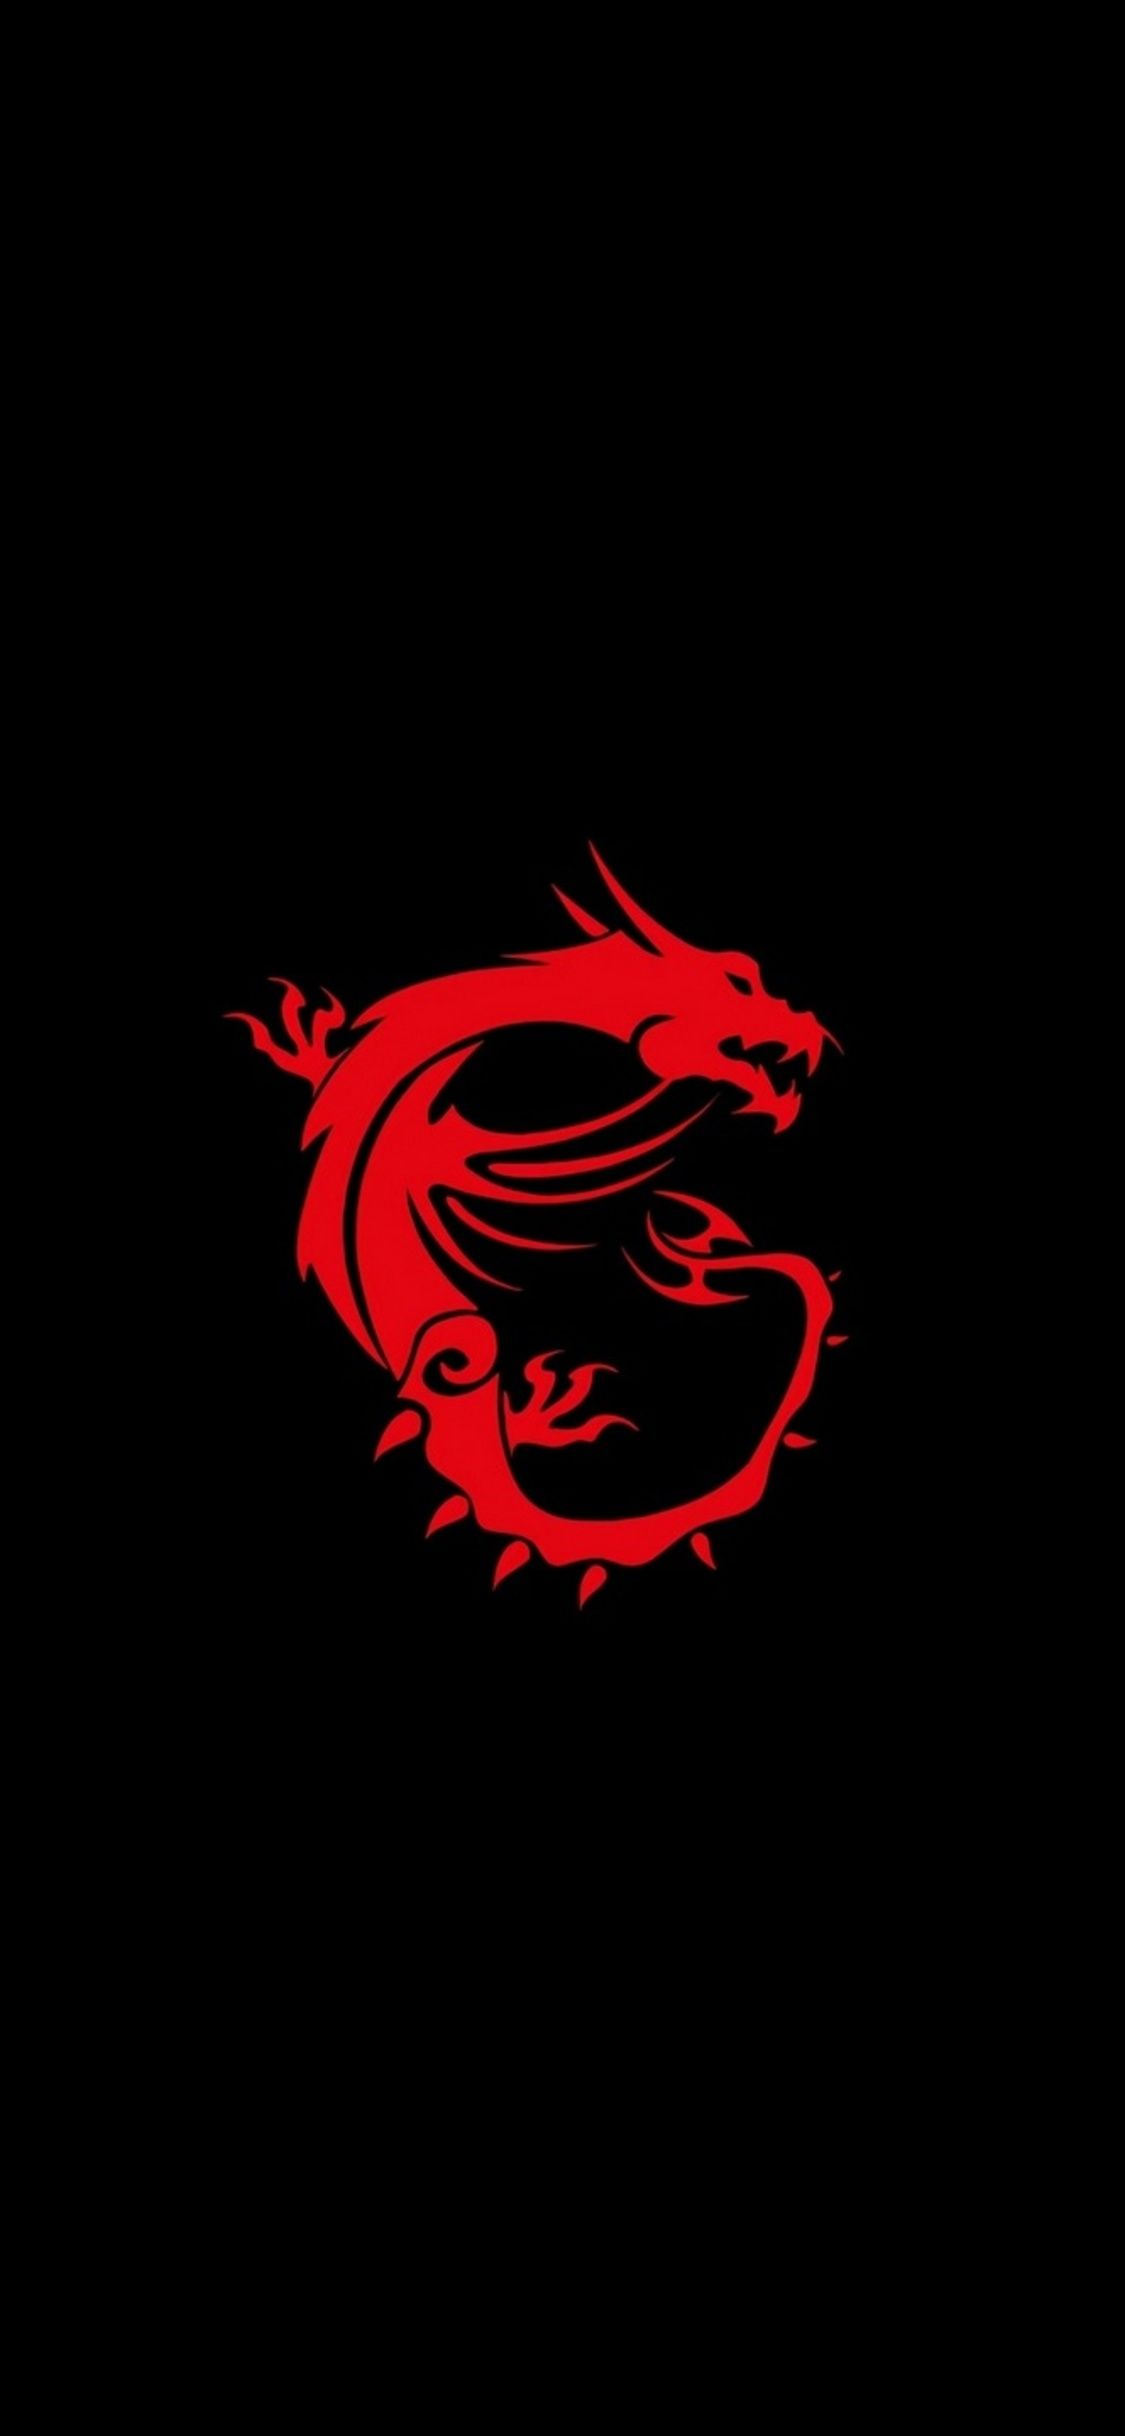 1125x2436 1125x2436 Msi Dragon Logo Iphone XS,Iphone 10,Iphone X HD 4k ...